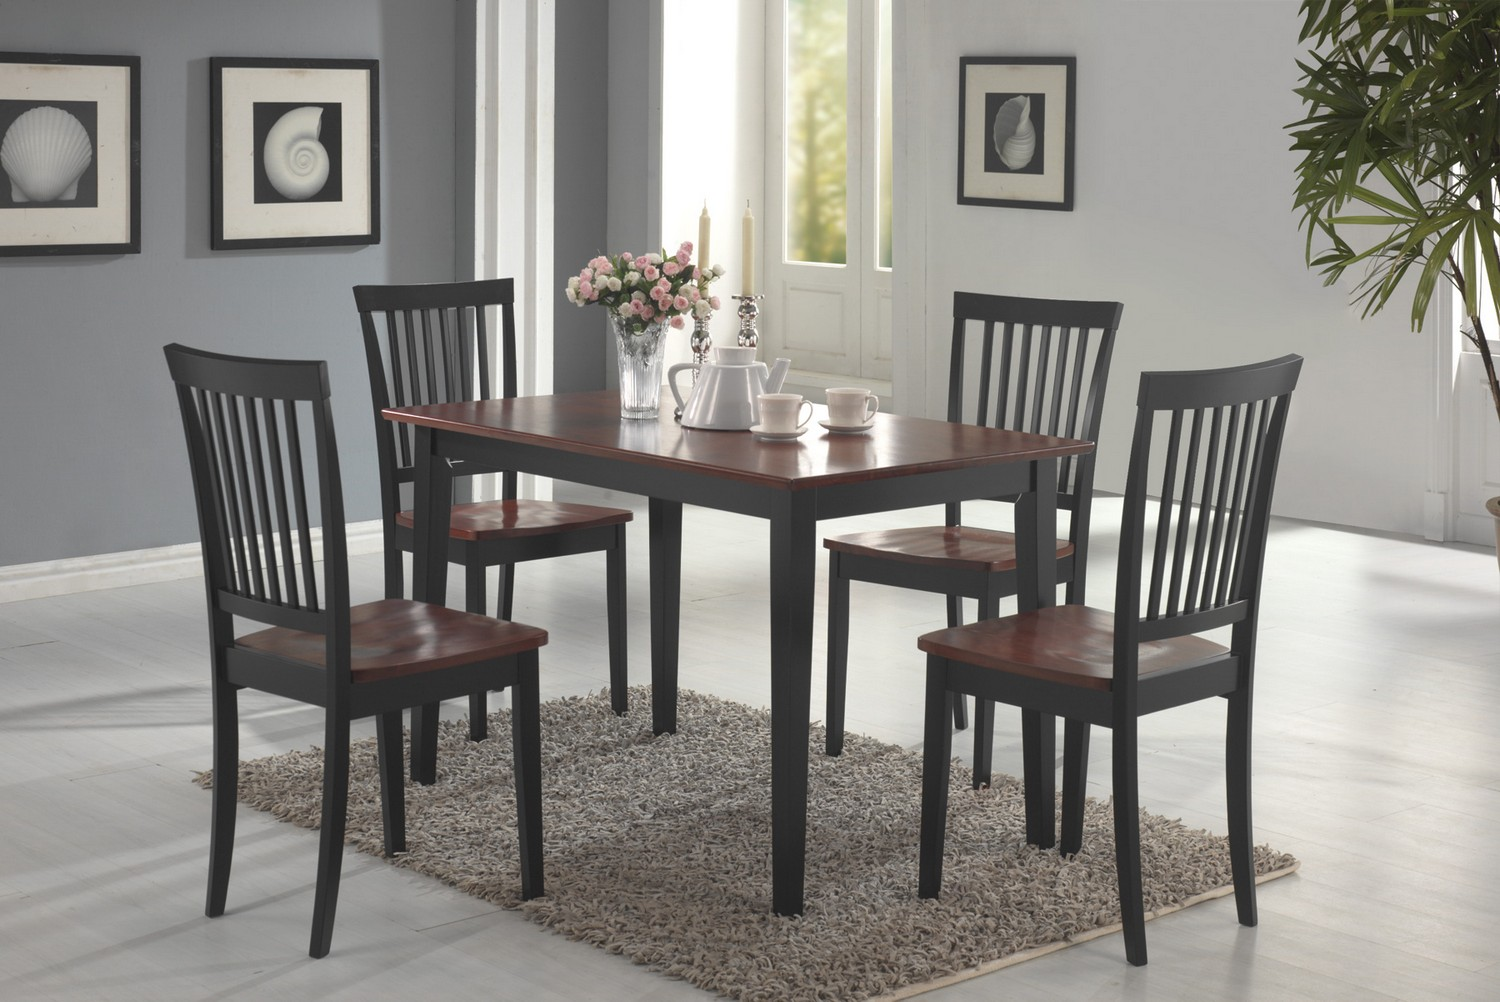 Coaster 150153 5-Piece Dining Set - Tobacco/Blac